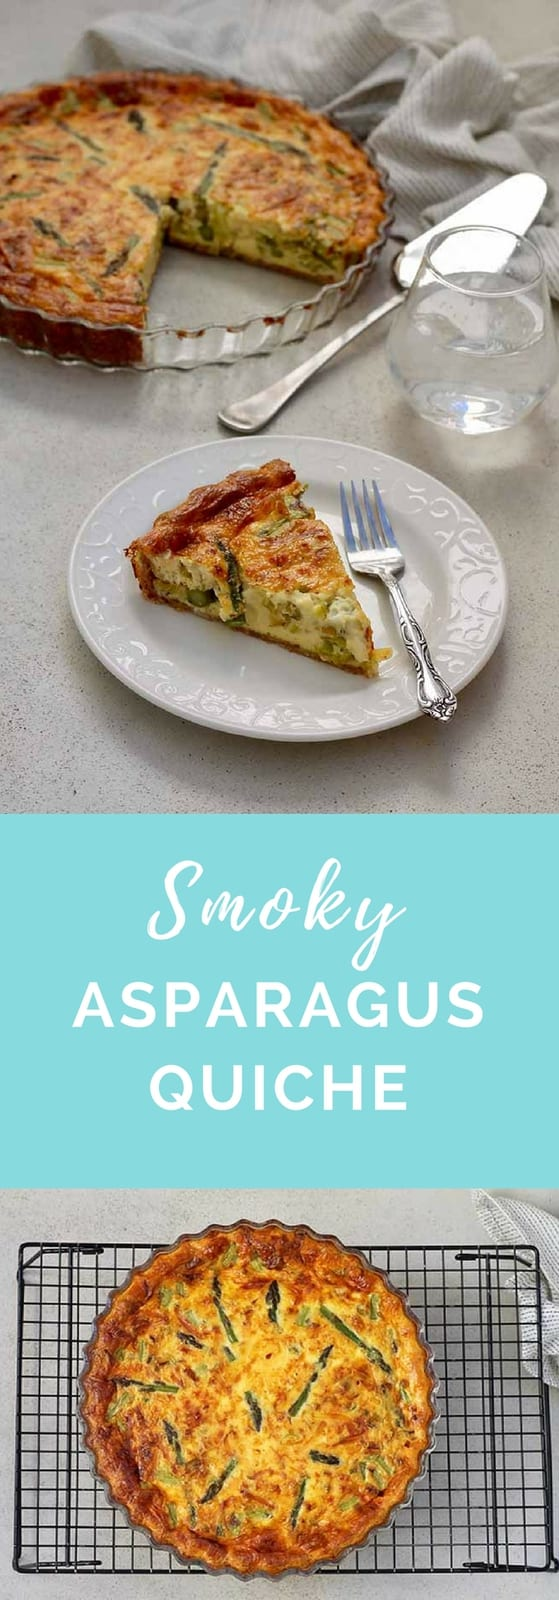 Smoky Asparagus Quiche! Made with softened leeks, smoked cheese, and a wholegrain spelt crust, this quiche is perfect for a springtime brunch.